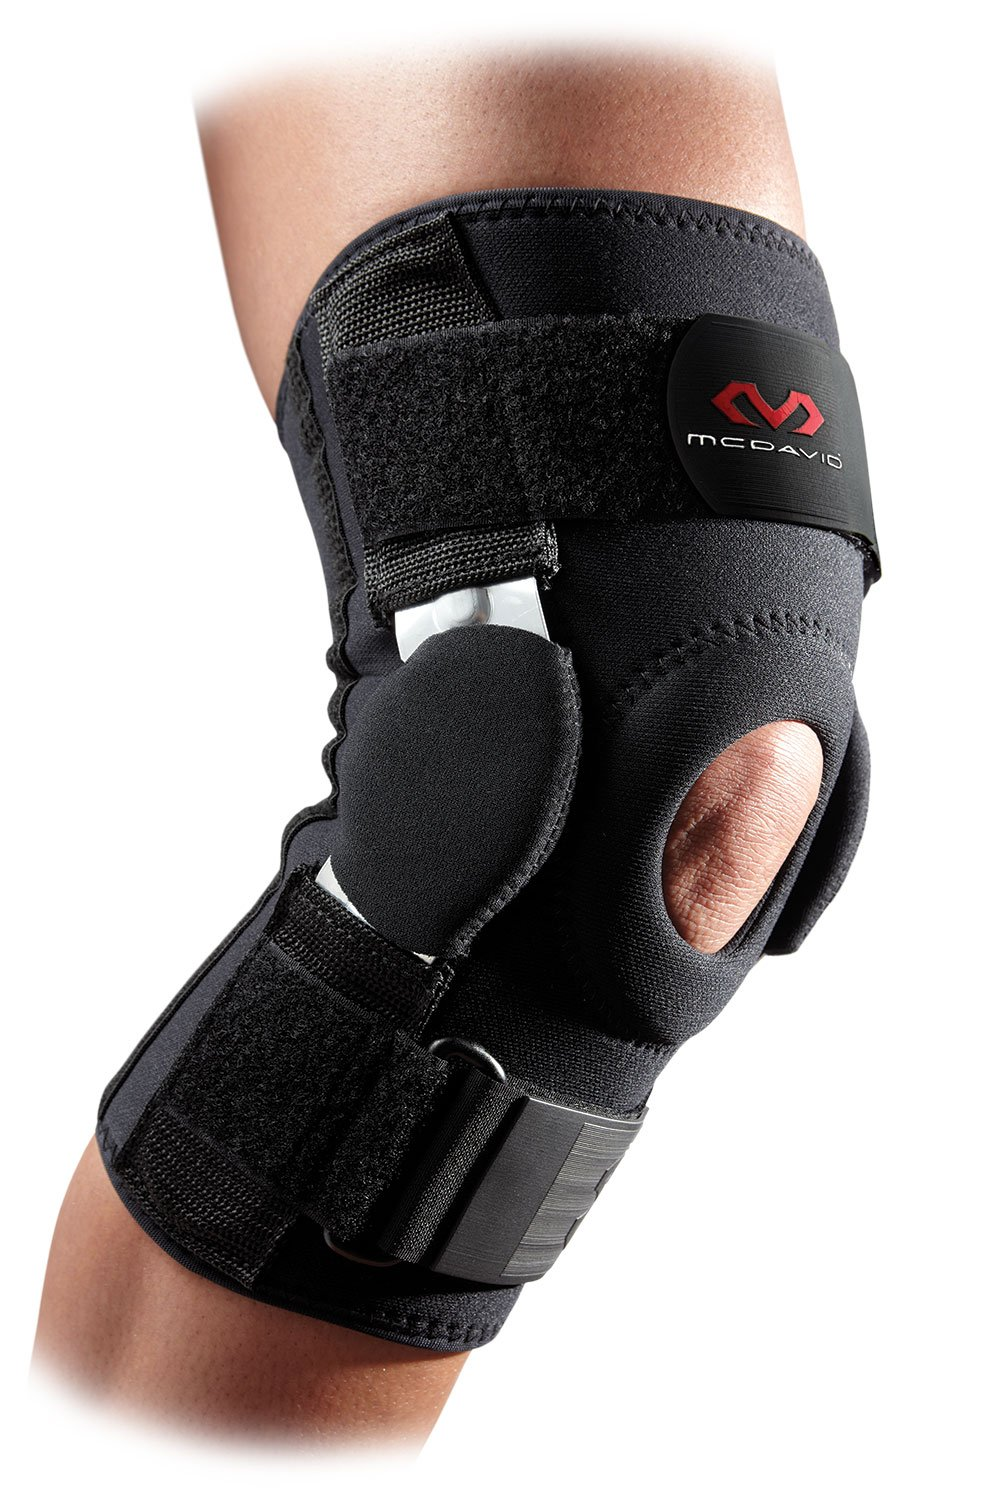 McDavid 422 Dual Disk Hinged Knee Brace (Small)